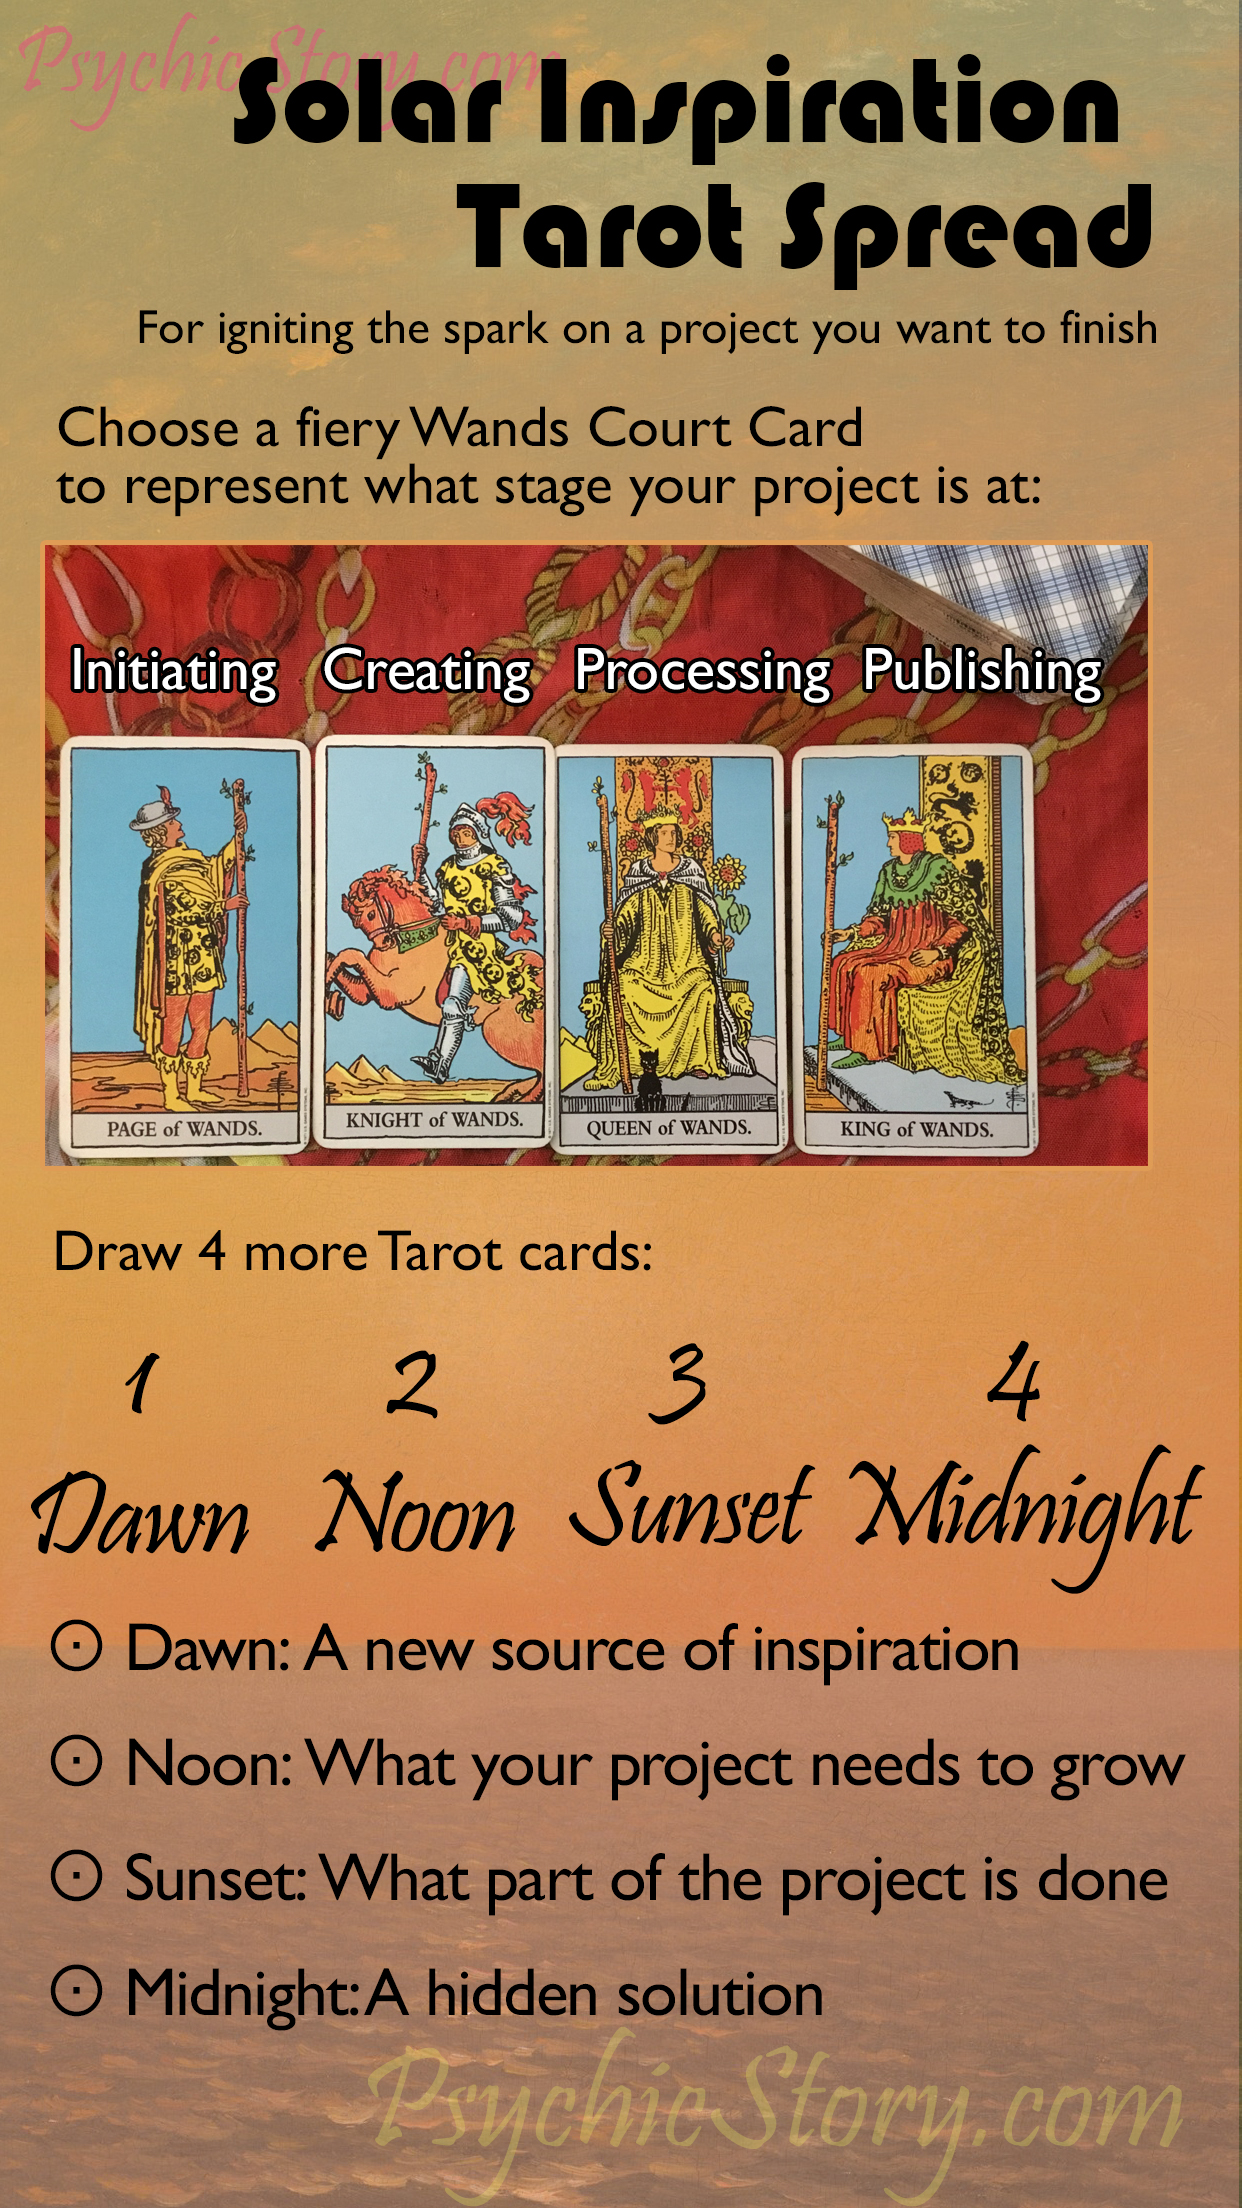 Solar Inspo for Instagram Tarot Spread.jpg